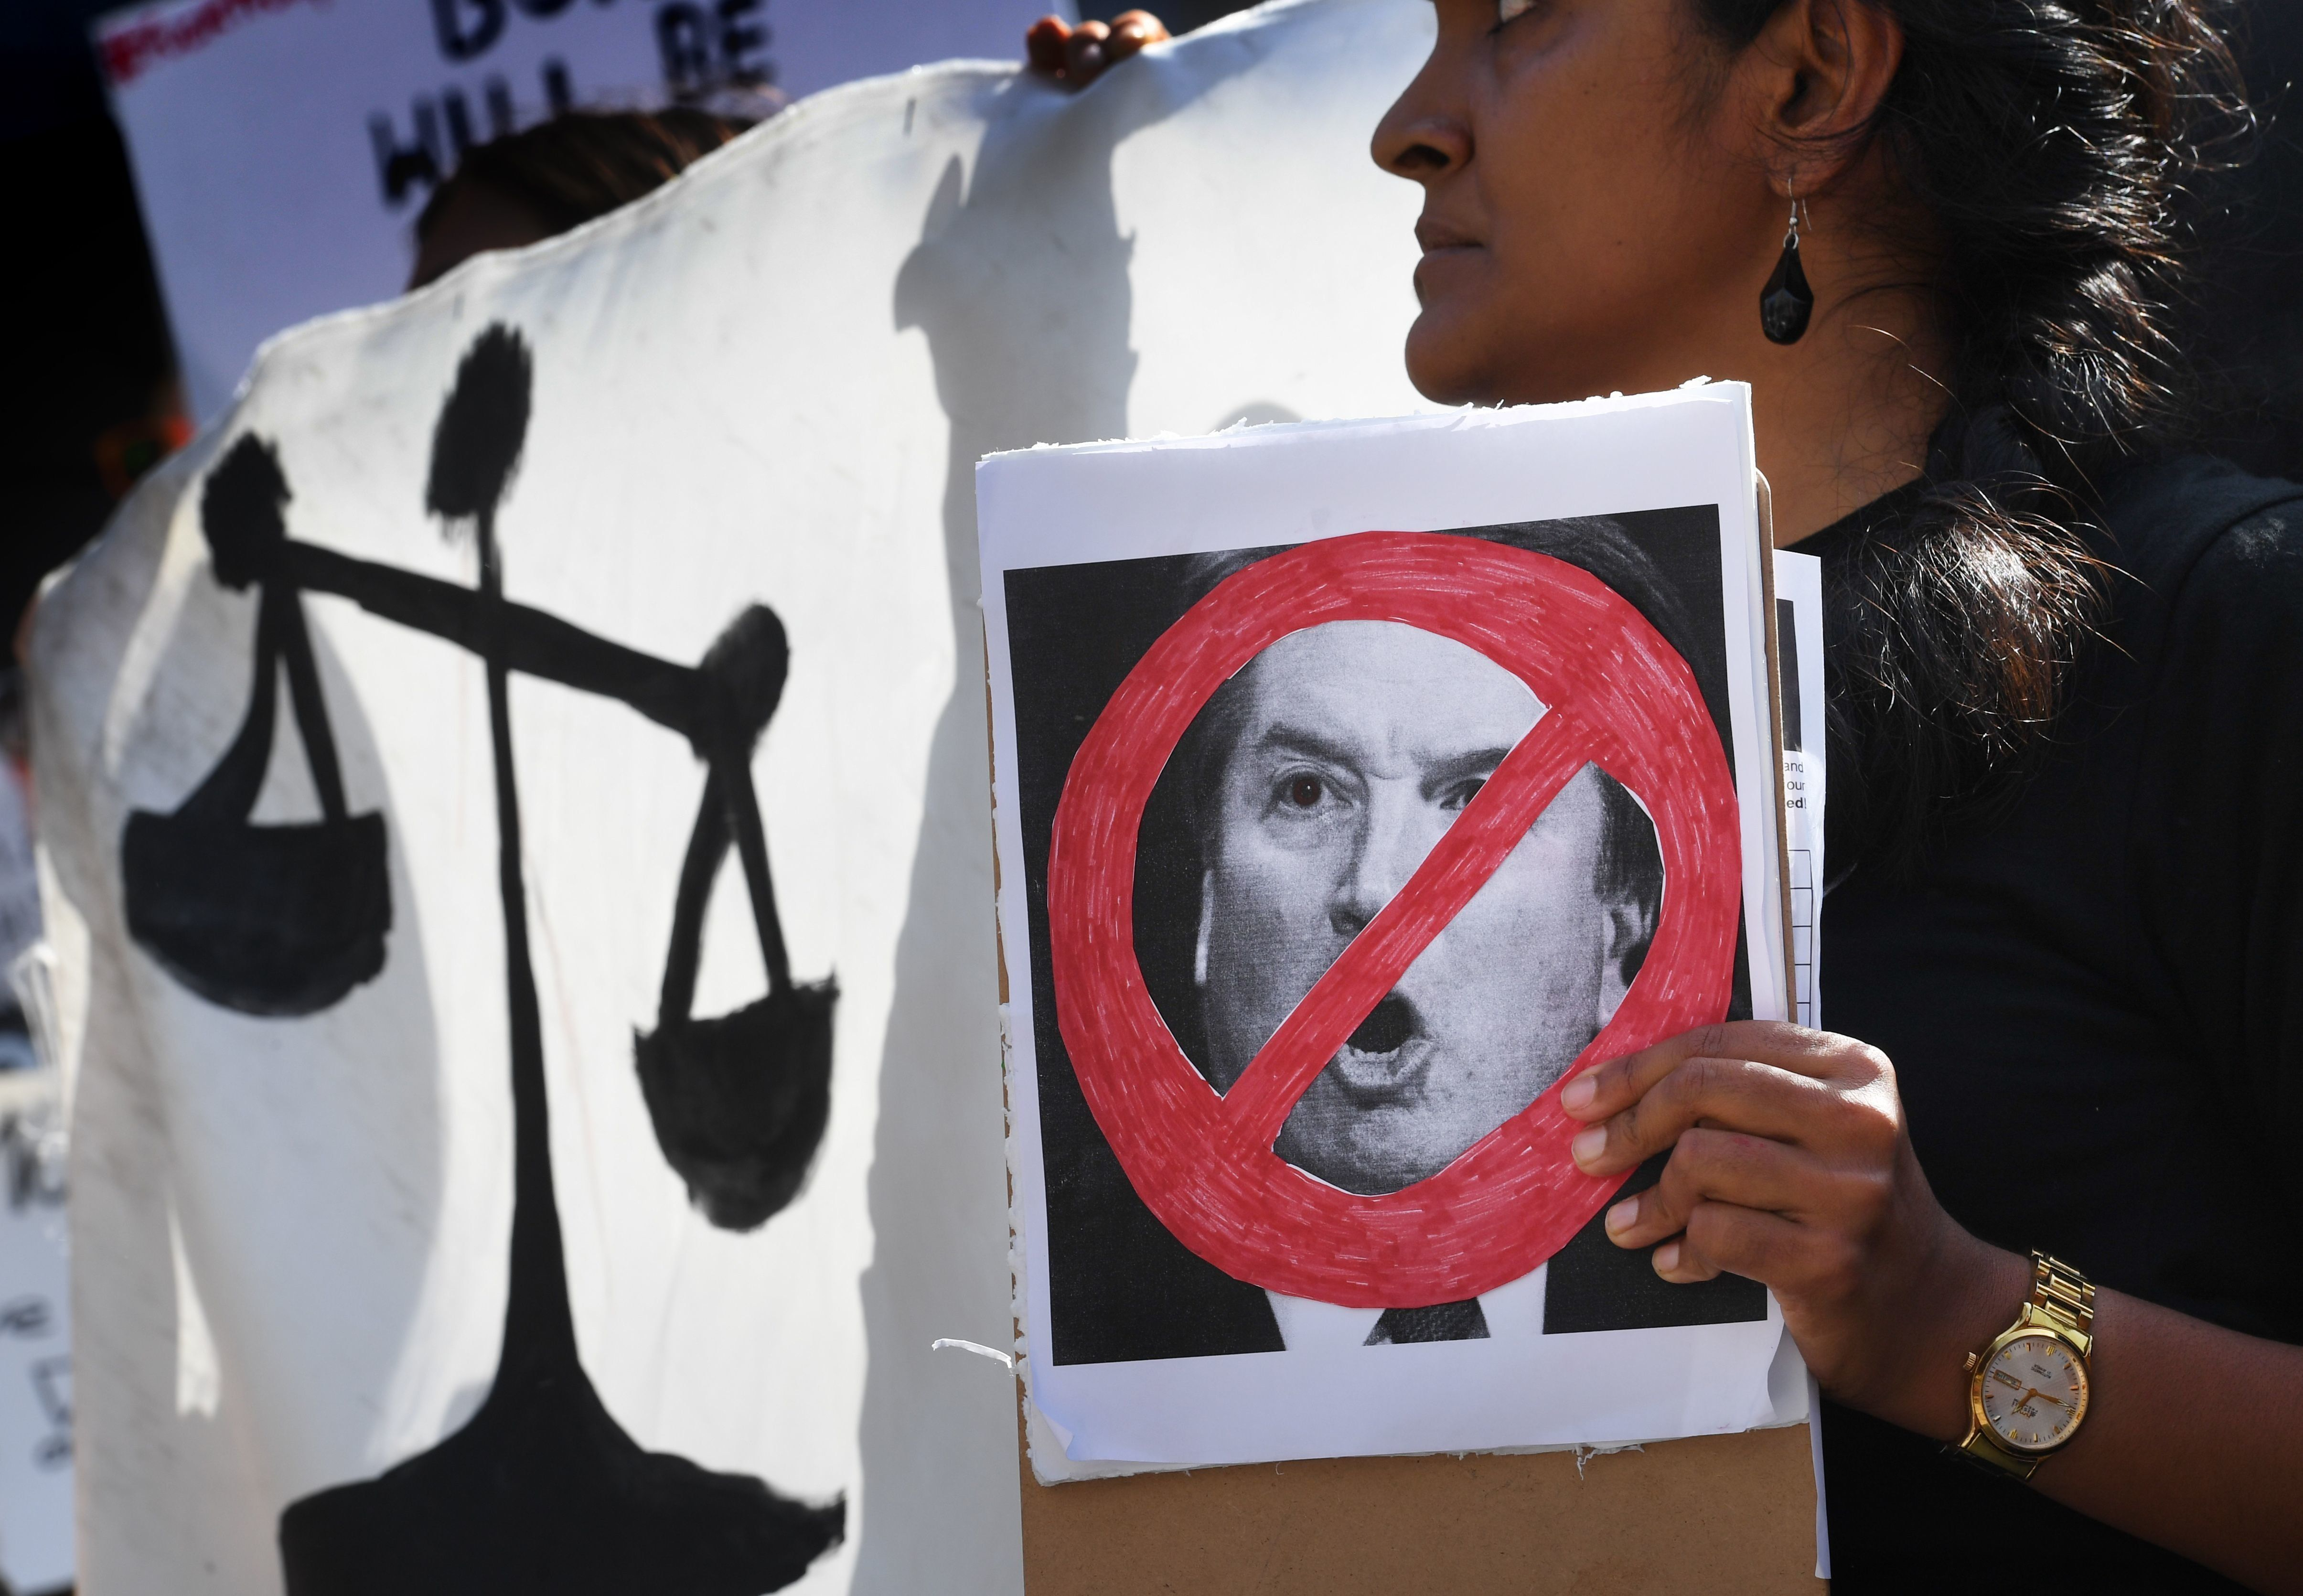 Demonstrators hold anti-Kavanaugh hold banners outside City Hall in Los Angeles on September 28, 2018. - The Senate Judiciary Committee on Friday approved Brett Kavanaugh, Donald Trump's pick for the US Supreme Court, one day after he fought off allegations of sexual assault at an emotional day-long public hearing. But in a dramatic last-minute move, Republican Senator Jeff Flake of Arizona asked for a delay of up to a week before the full vote takes place to allow for an FBI investigation into the allegations against Kavanaugh. (Photo by Mark RALSTON / AFP)        (Photo credit should read MARK RALSTON/AFP/Getty Images)